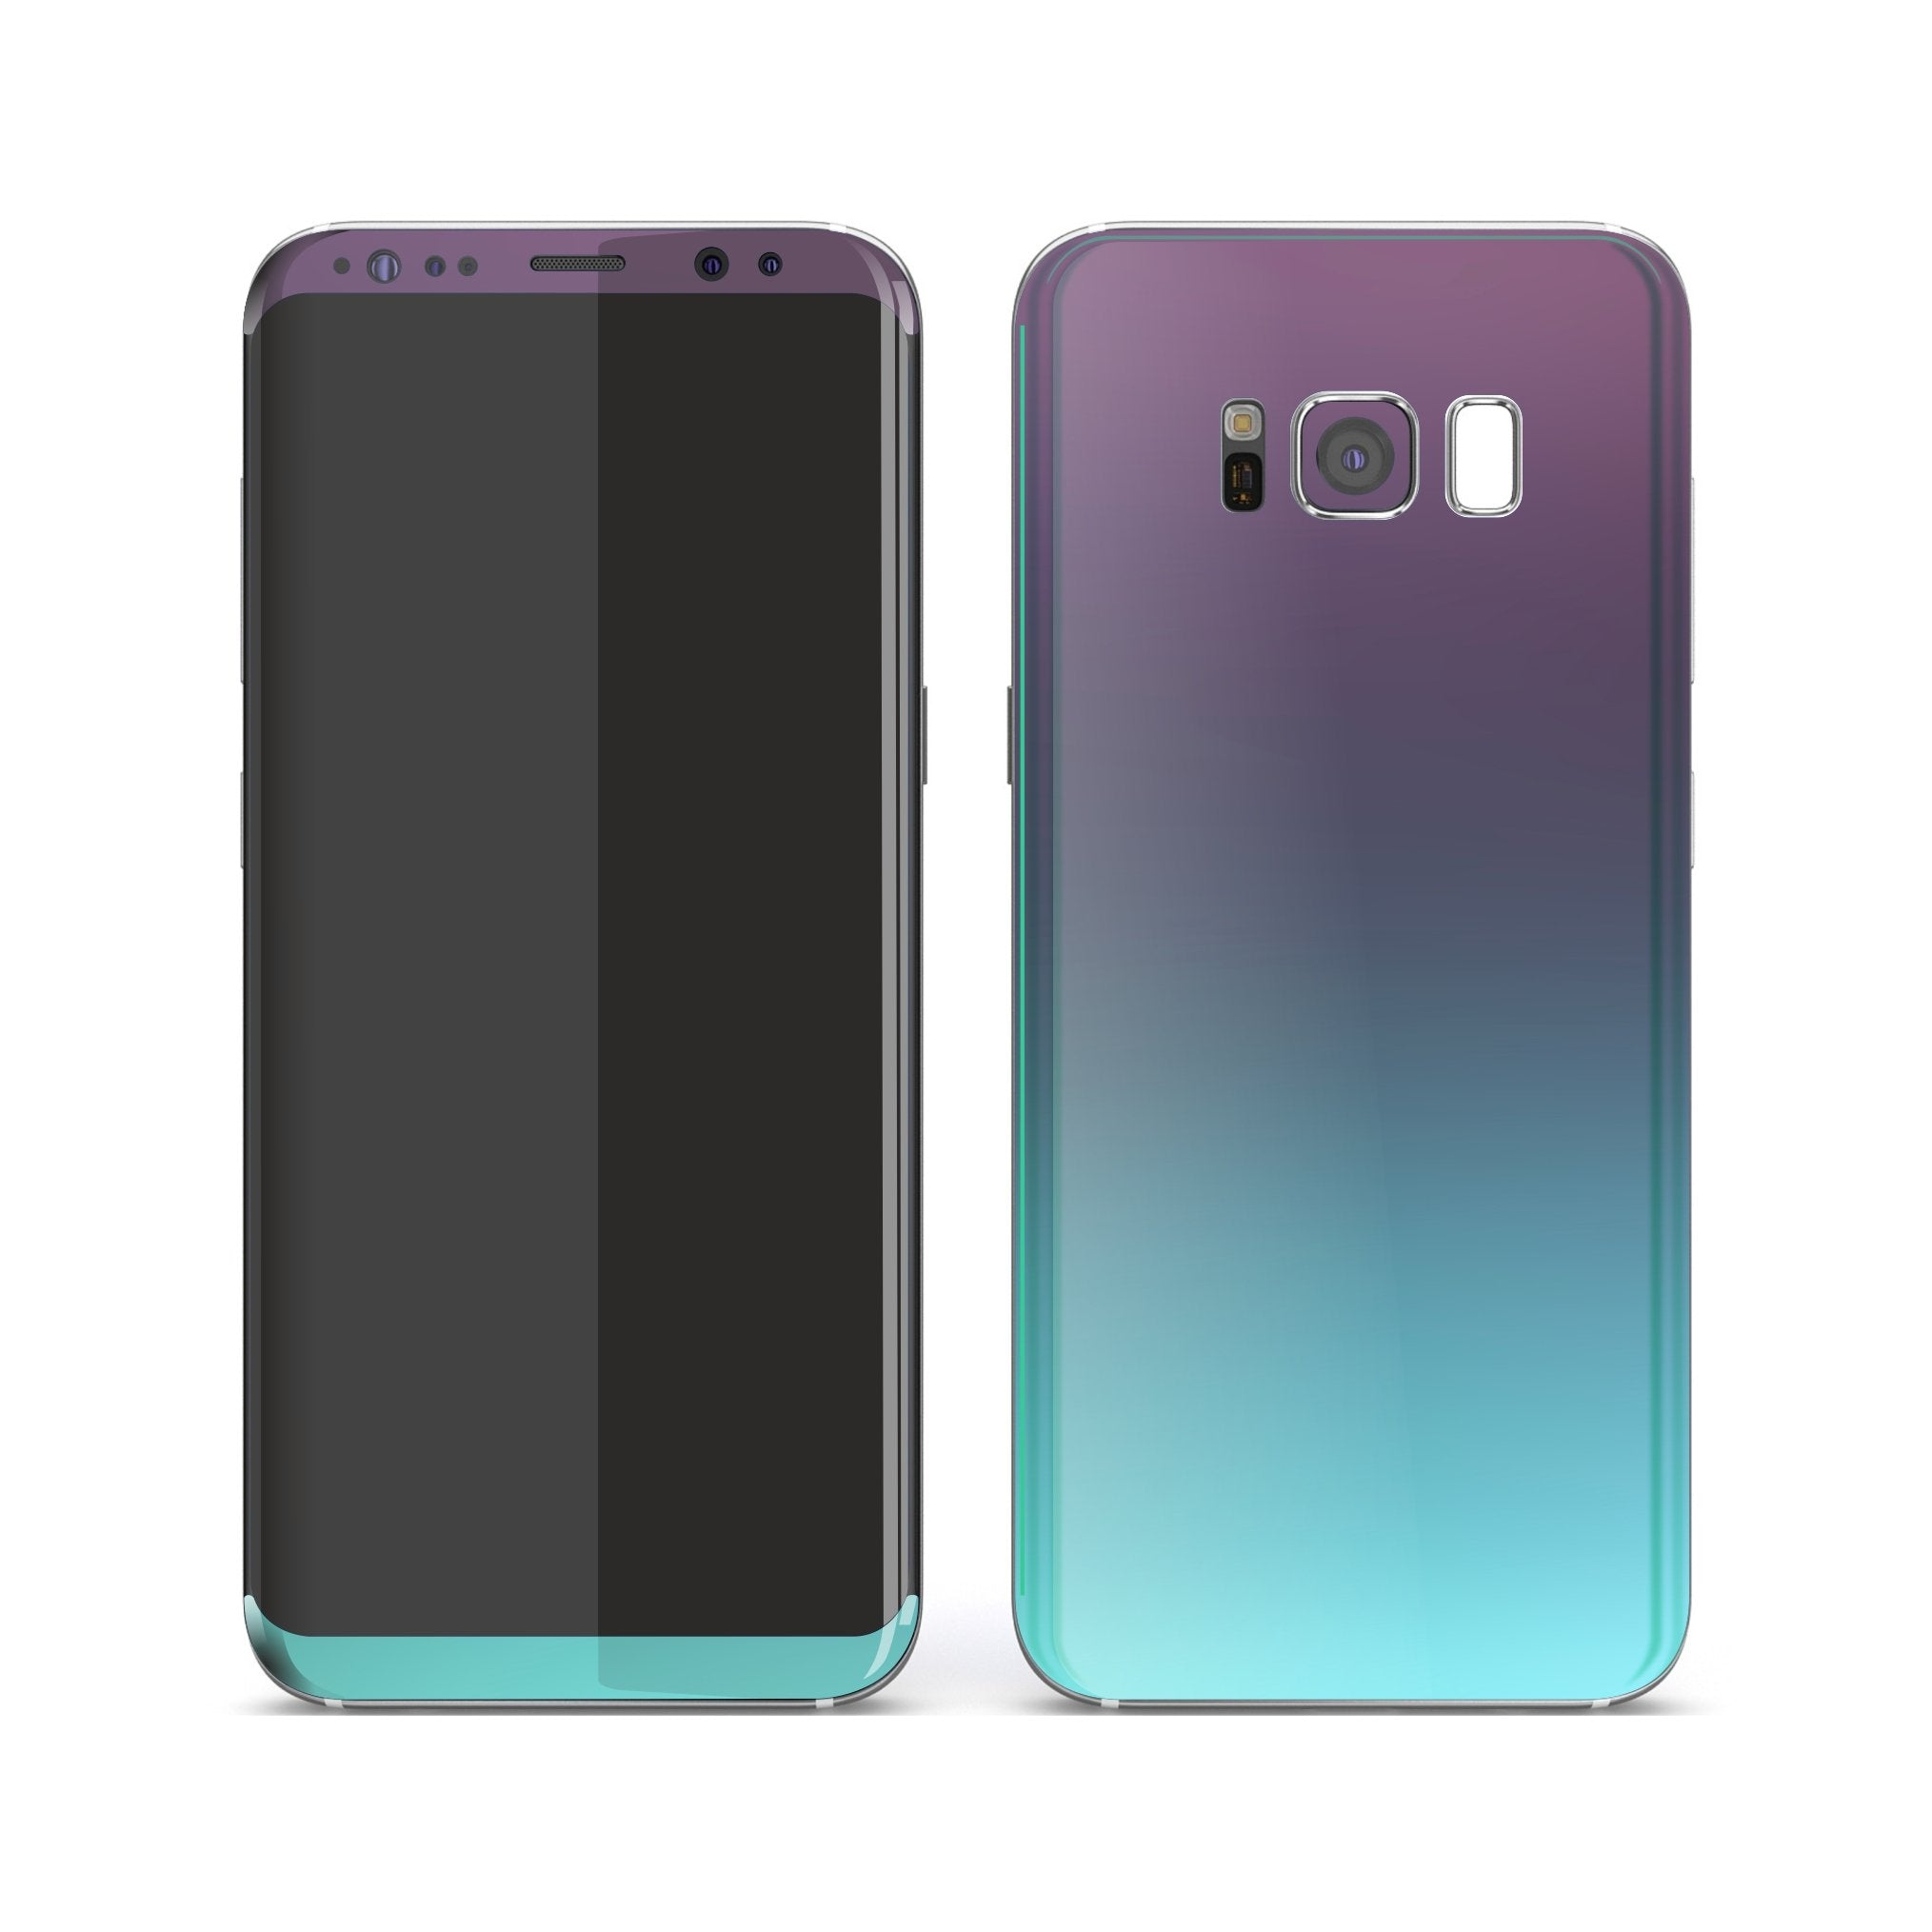 Samsung Galaxy S8+ Chameleon Turquoise Lavender Colour-Changing Skin, Decal, Wrap, Protector, Cover by EasySkinz | EasySkinz.com